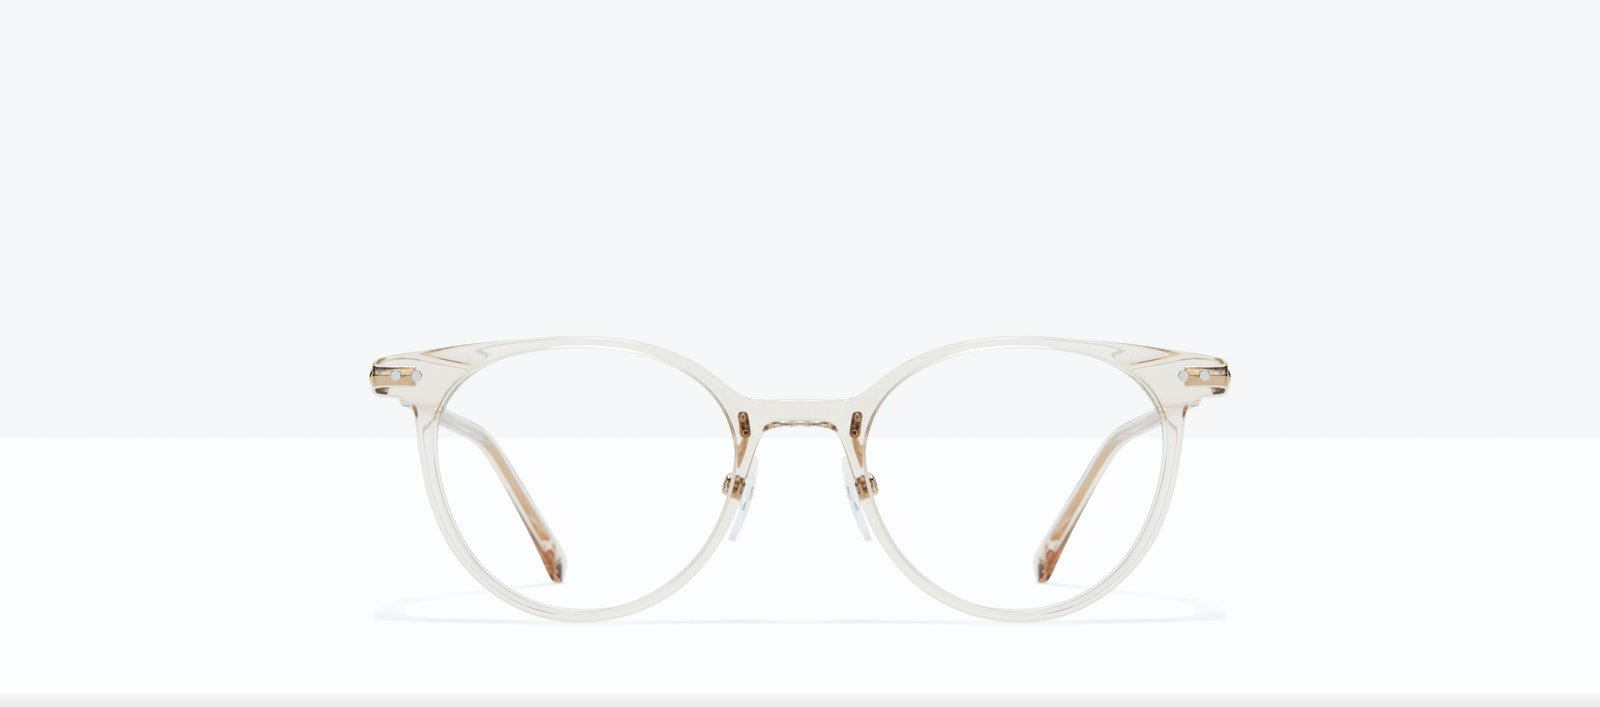 Affordable Fashion Glasses Round Eyeglasses Women Lightheart L Blond Front